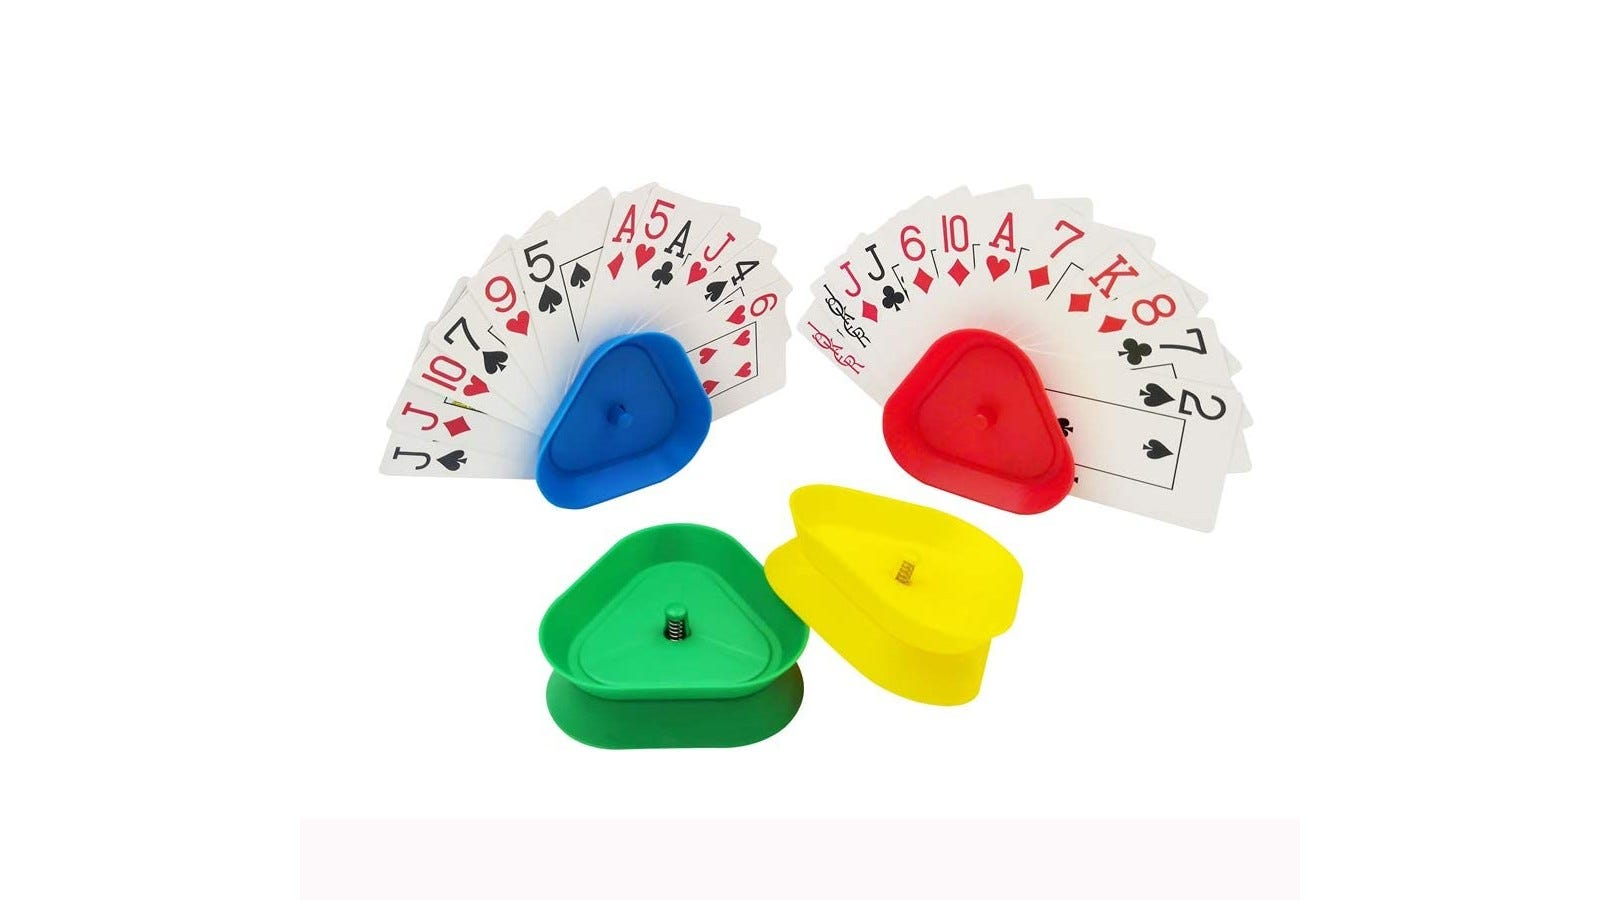 four card holders in green, yellow, red, and blue; two are empty, and two are full of face cards